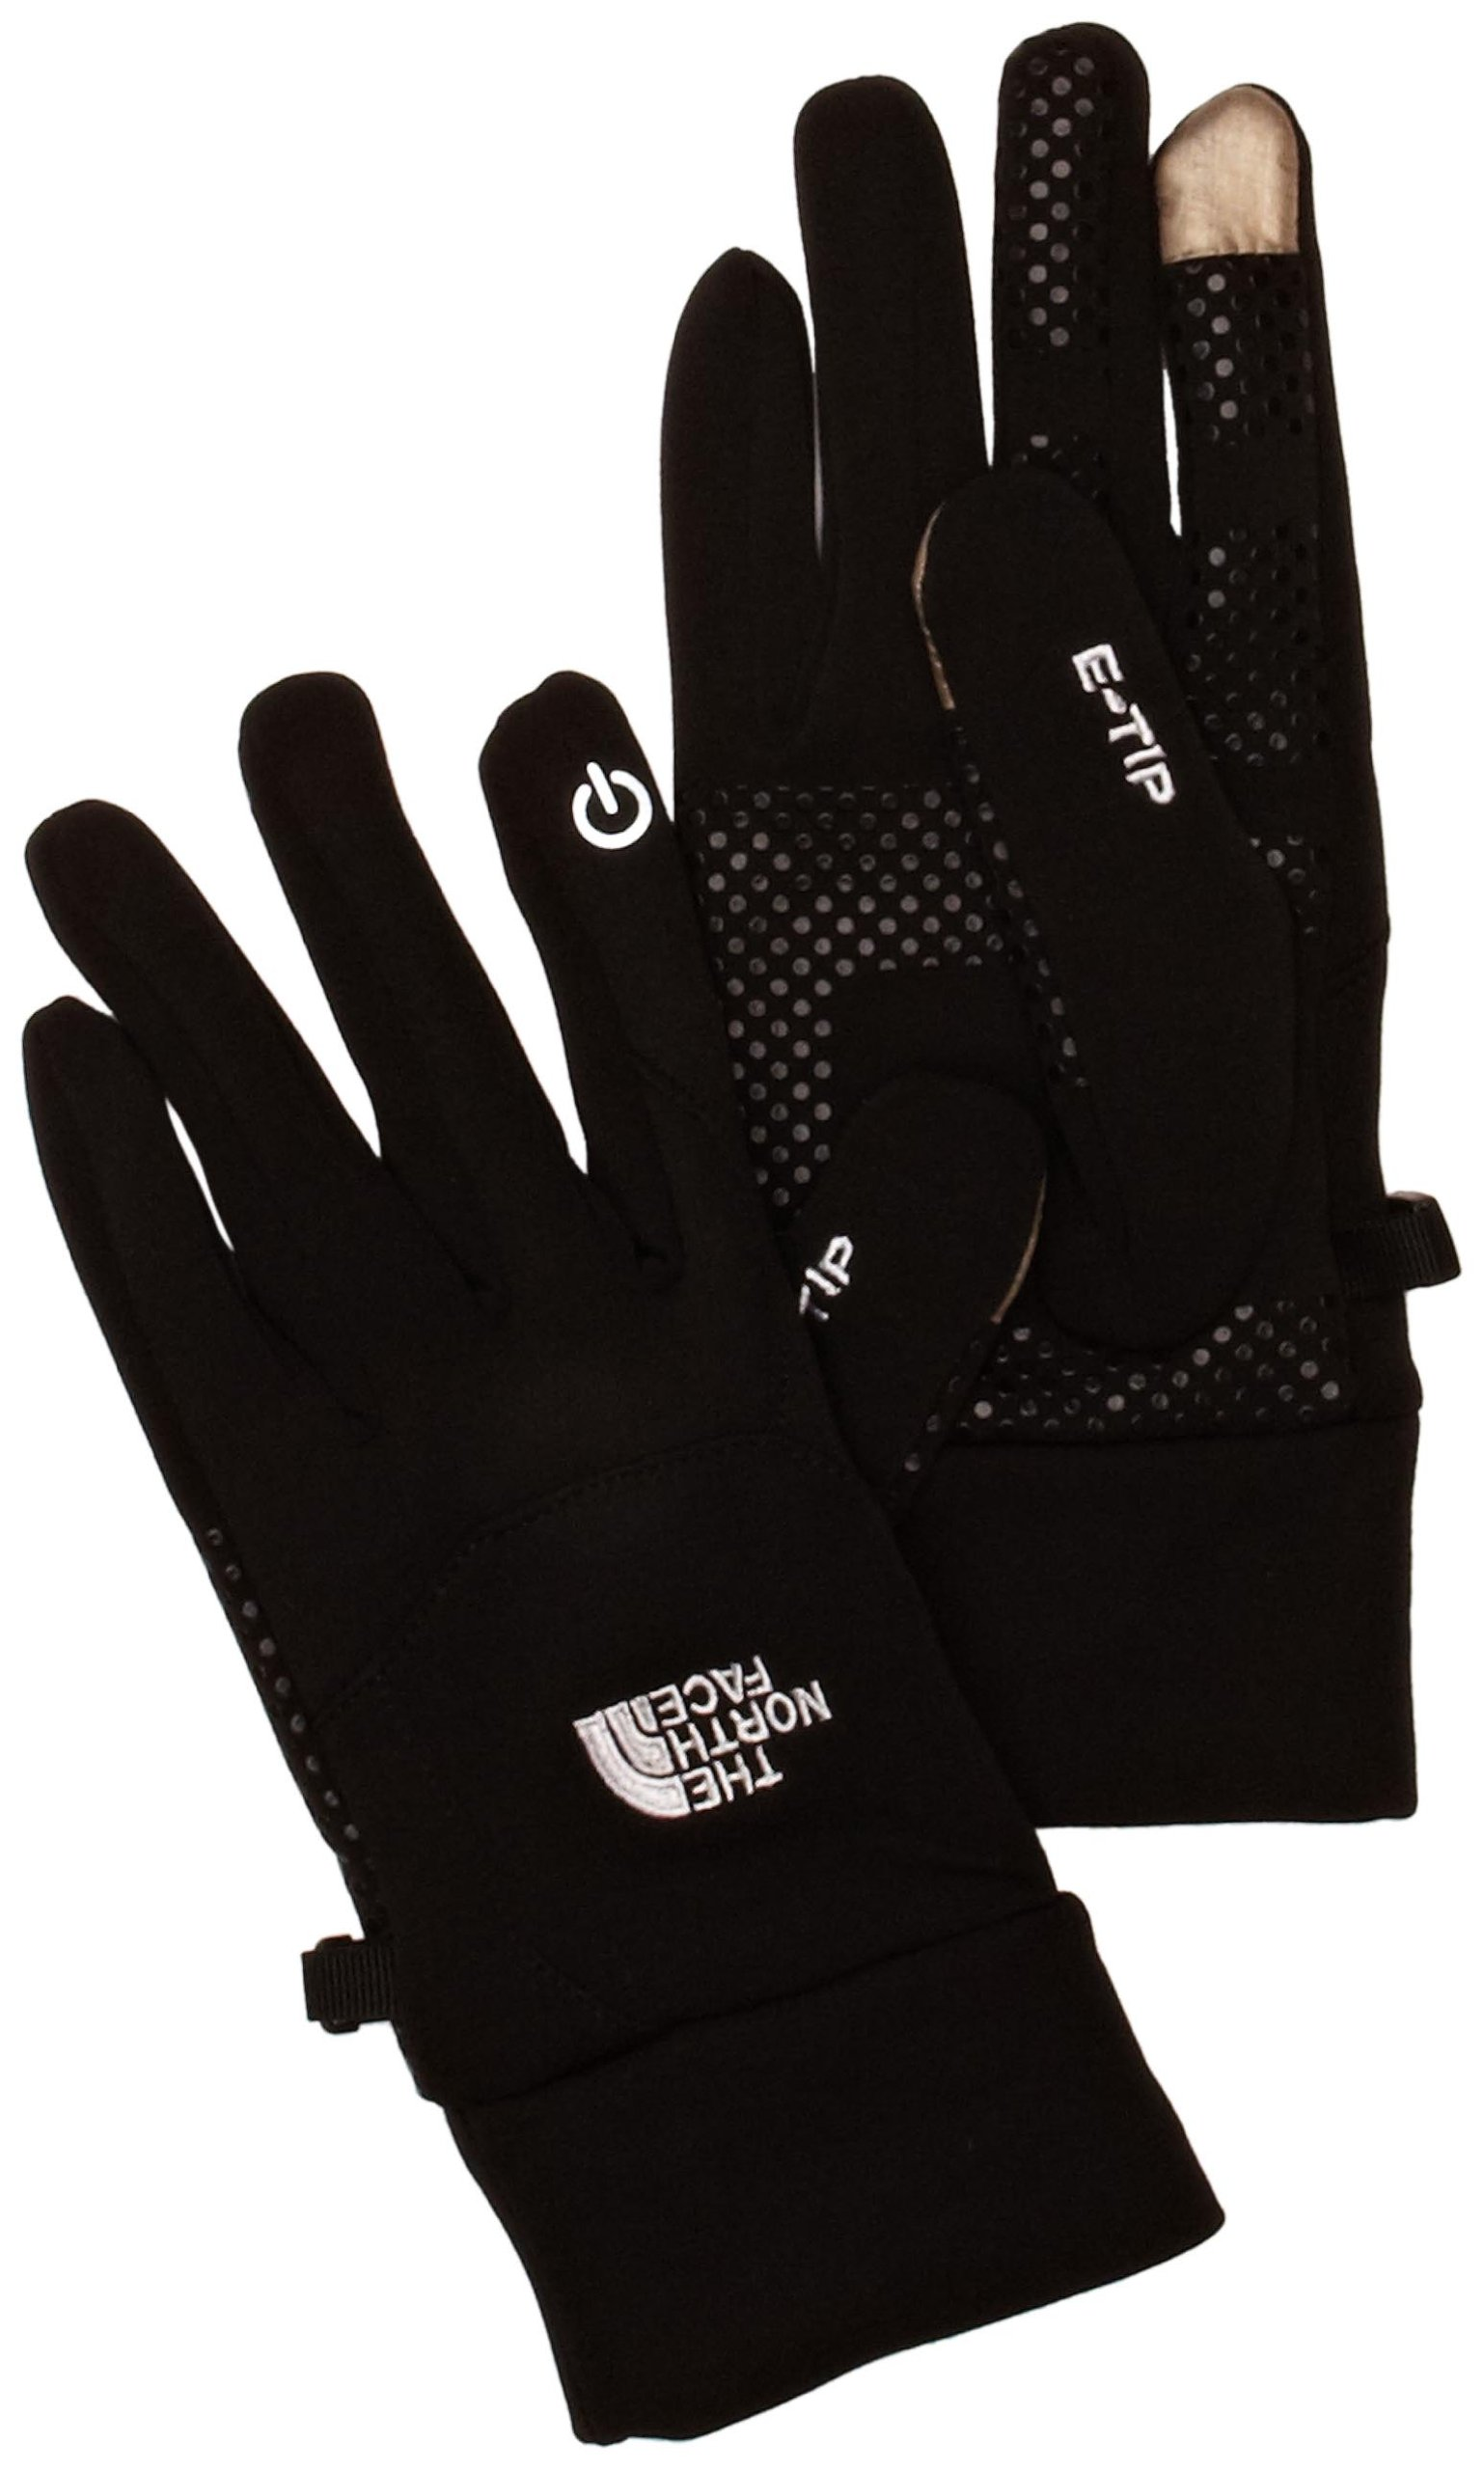 71NcH865H8L - THE NORTH FACE Men's Etip Glove